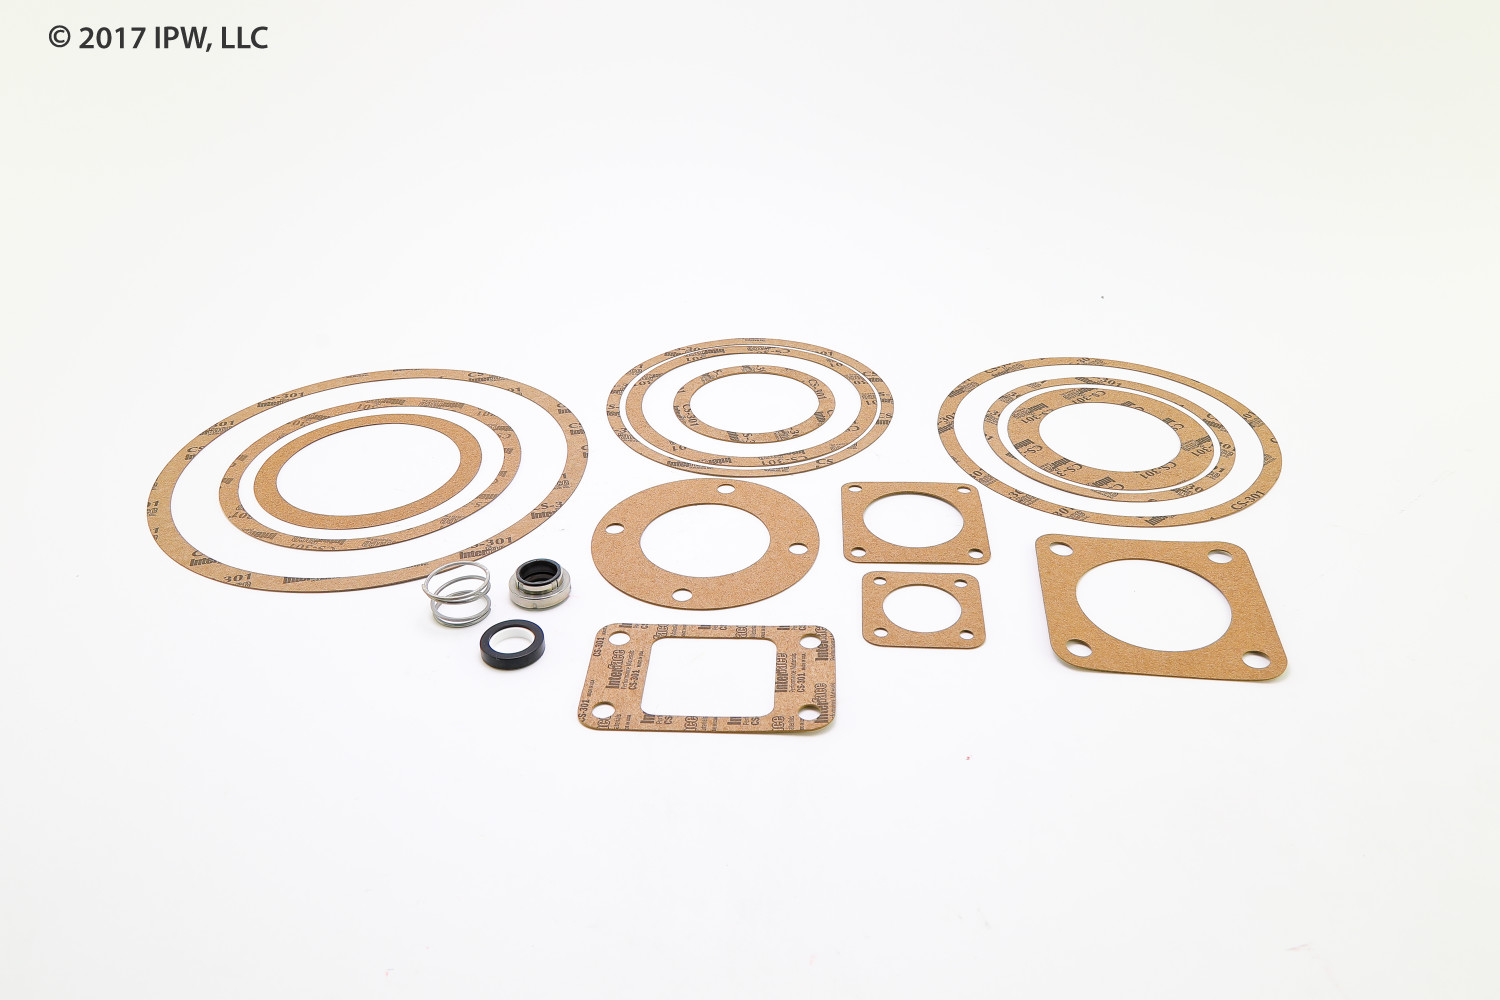 Xylem-Hoffman Specialty 180011 GASKET/SEAL KIT